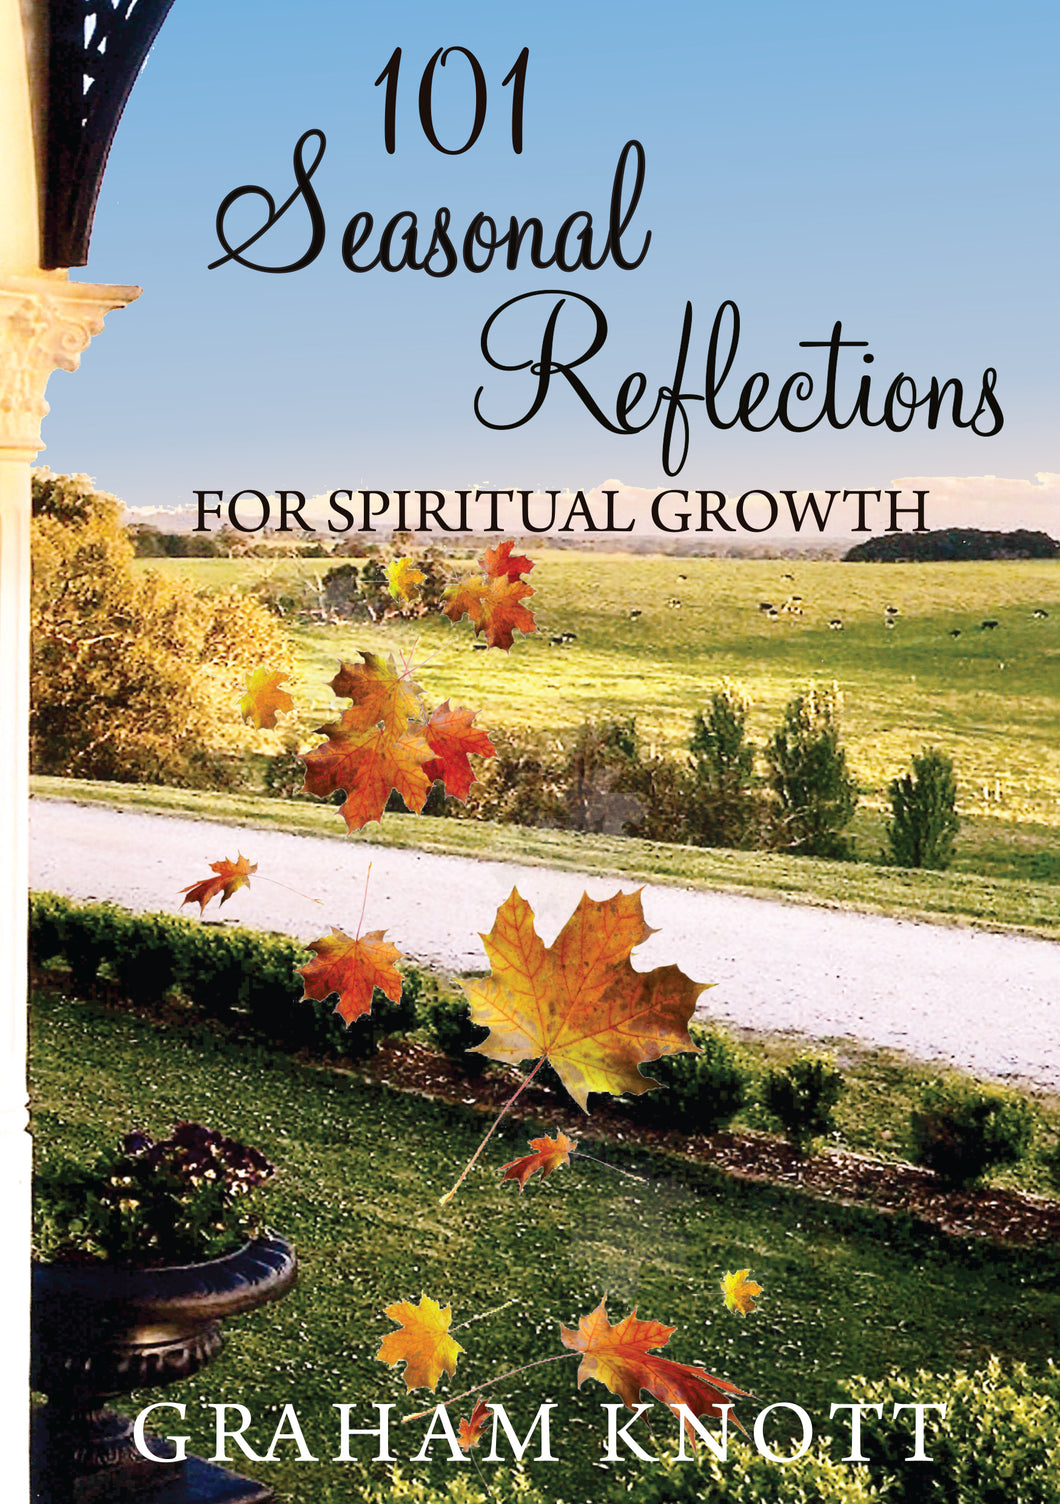 101 Seasonal Reflections for Spiritual Growth